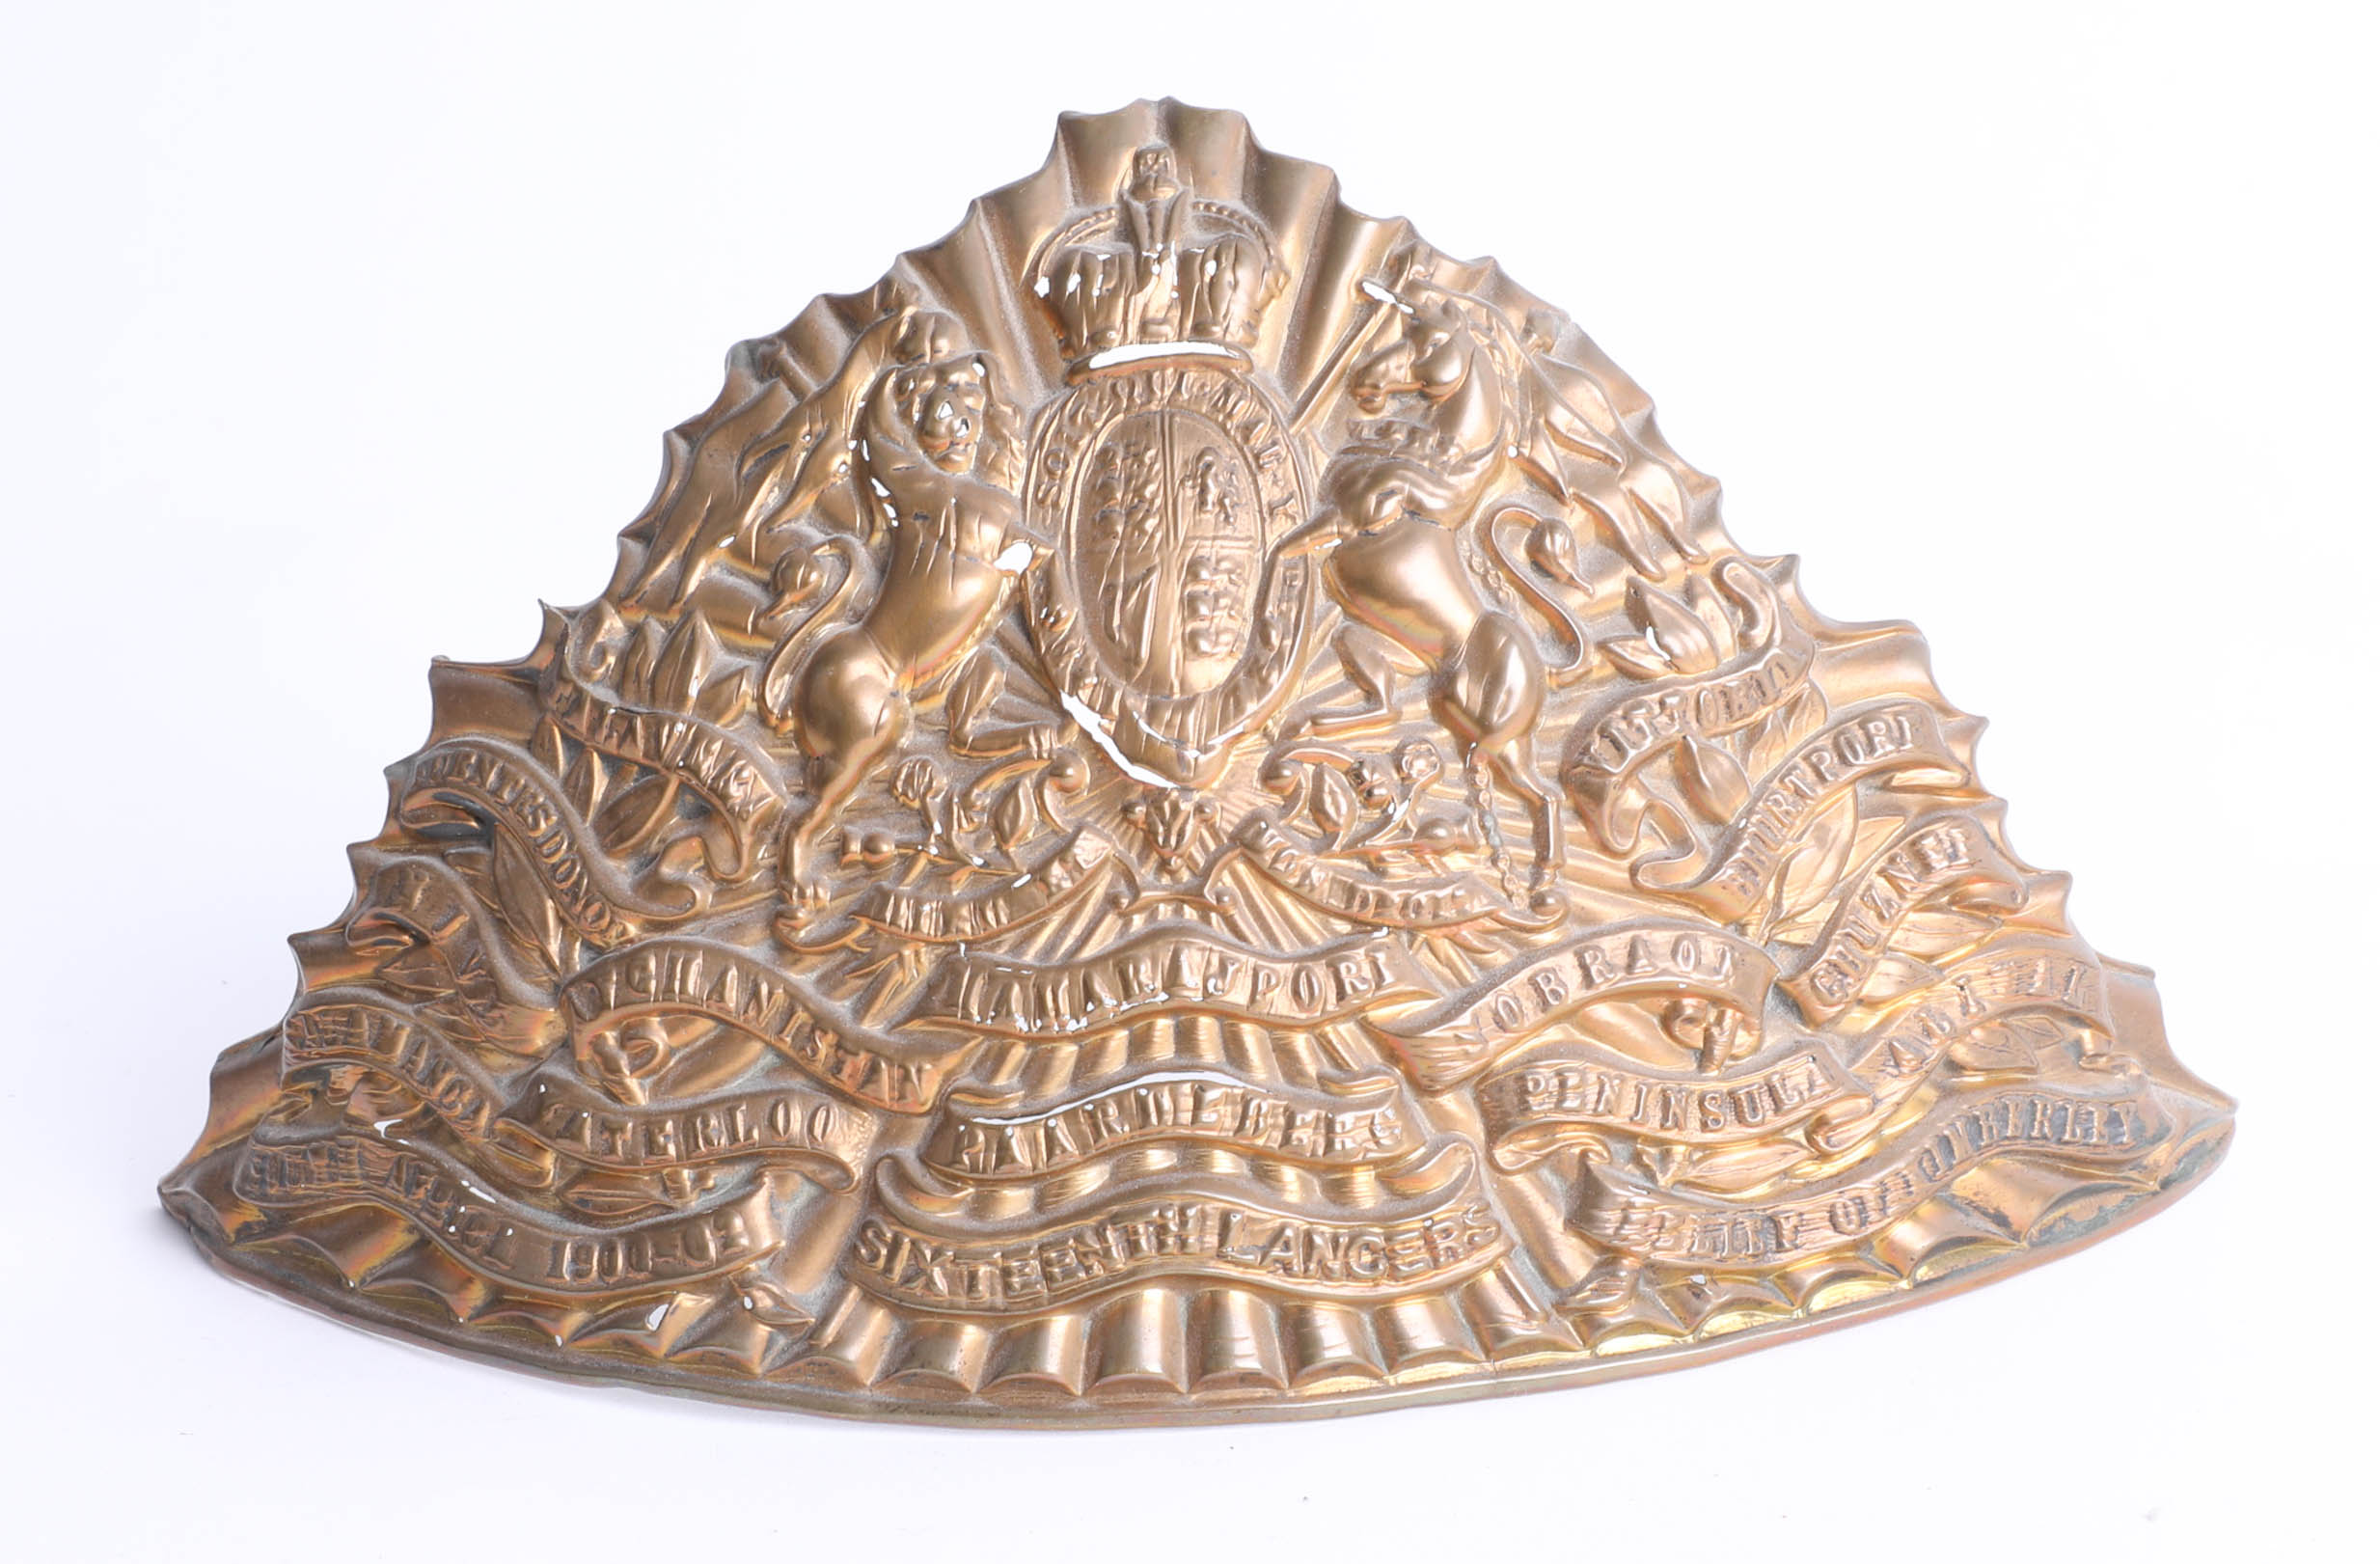 Lot 023 - A 19th century British 16th Lancers chapka plate badge. Part of the Late Reverend Geoffrey Garner